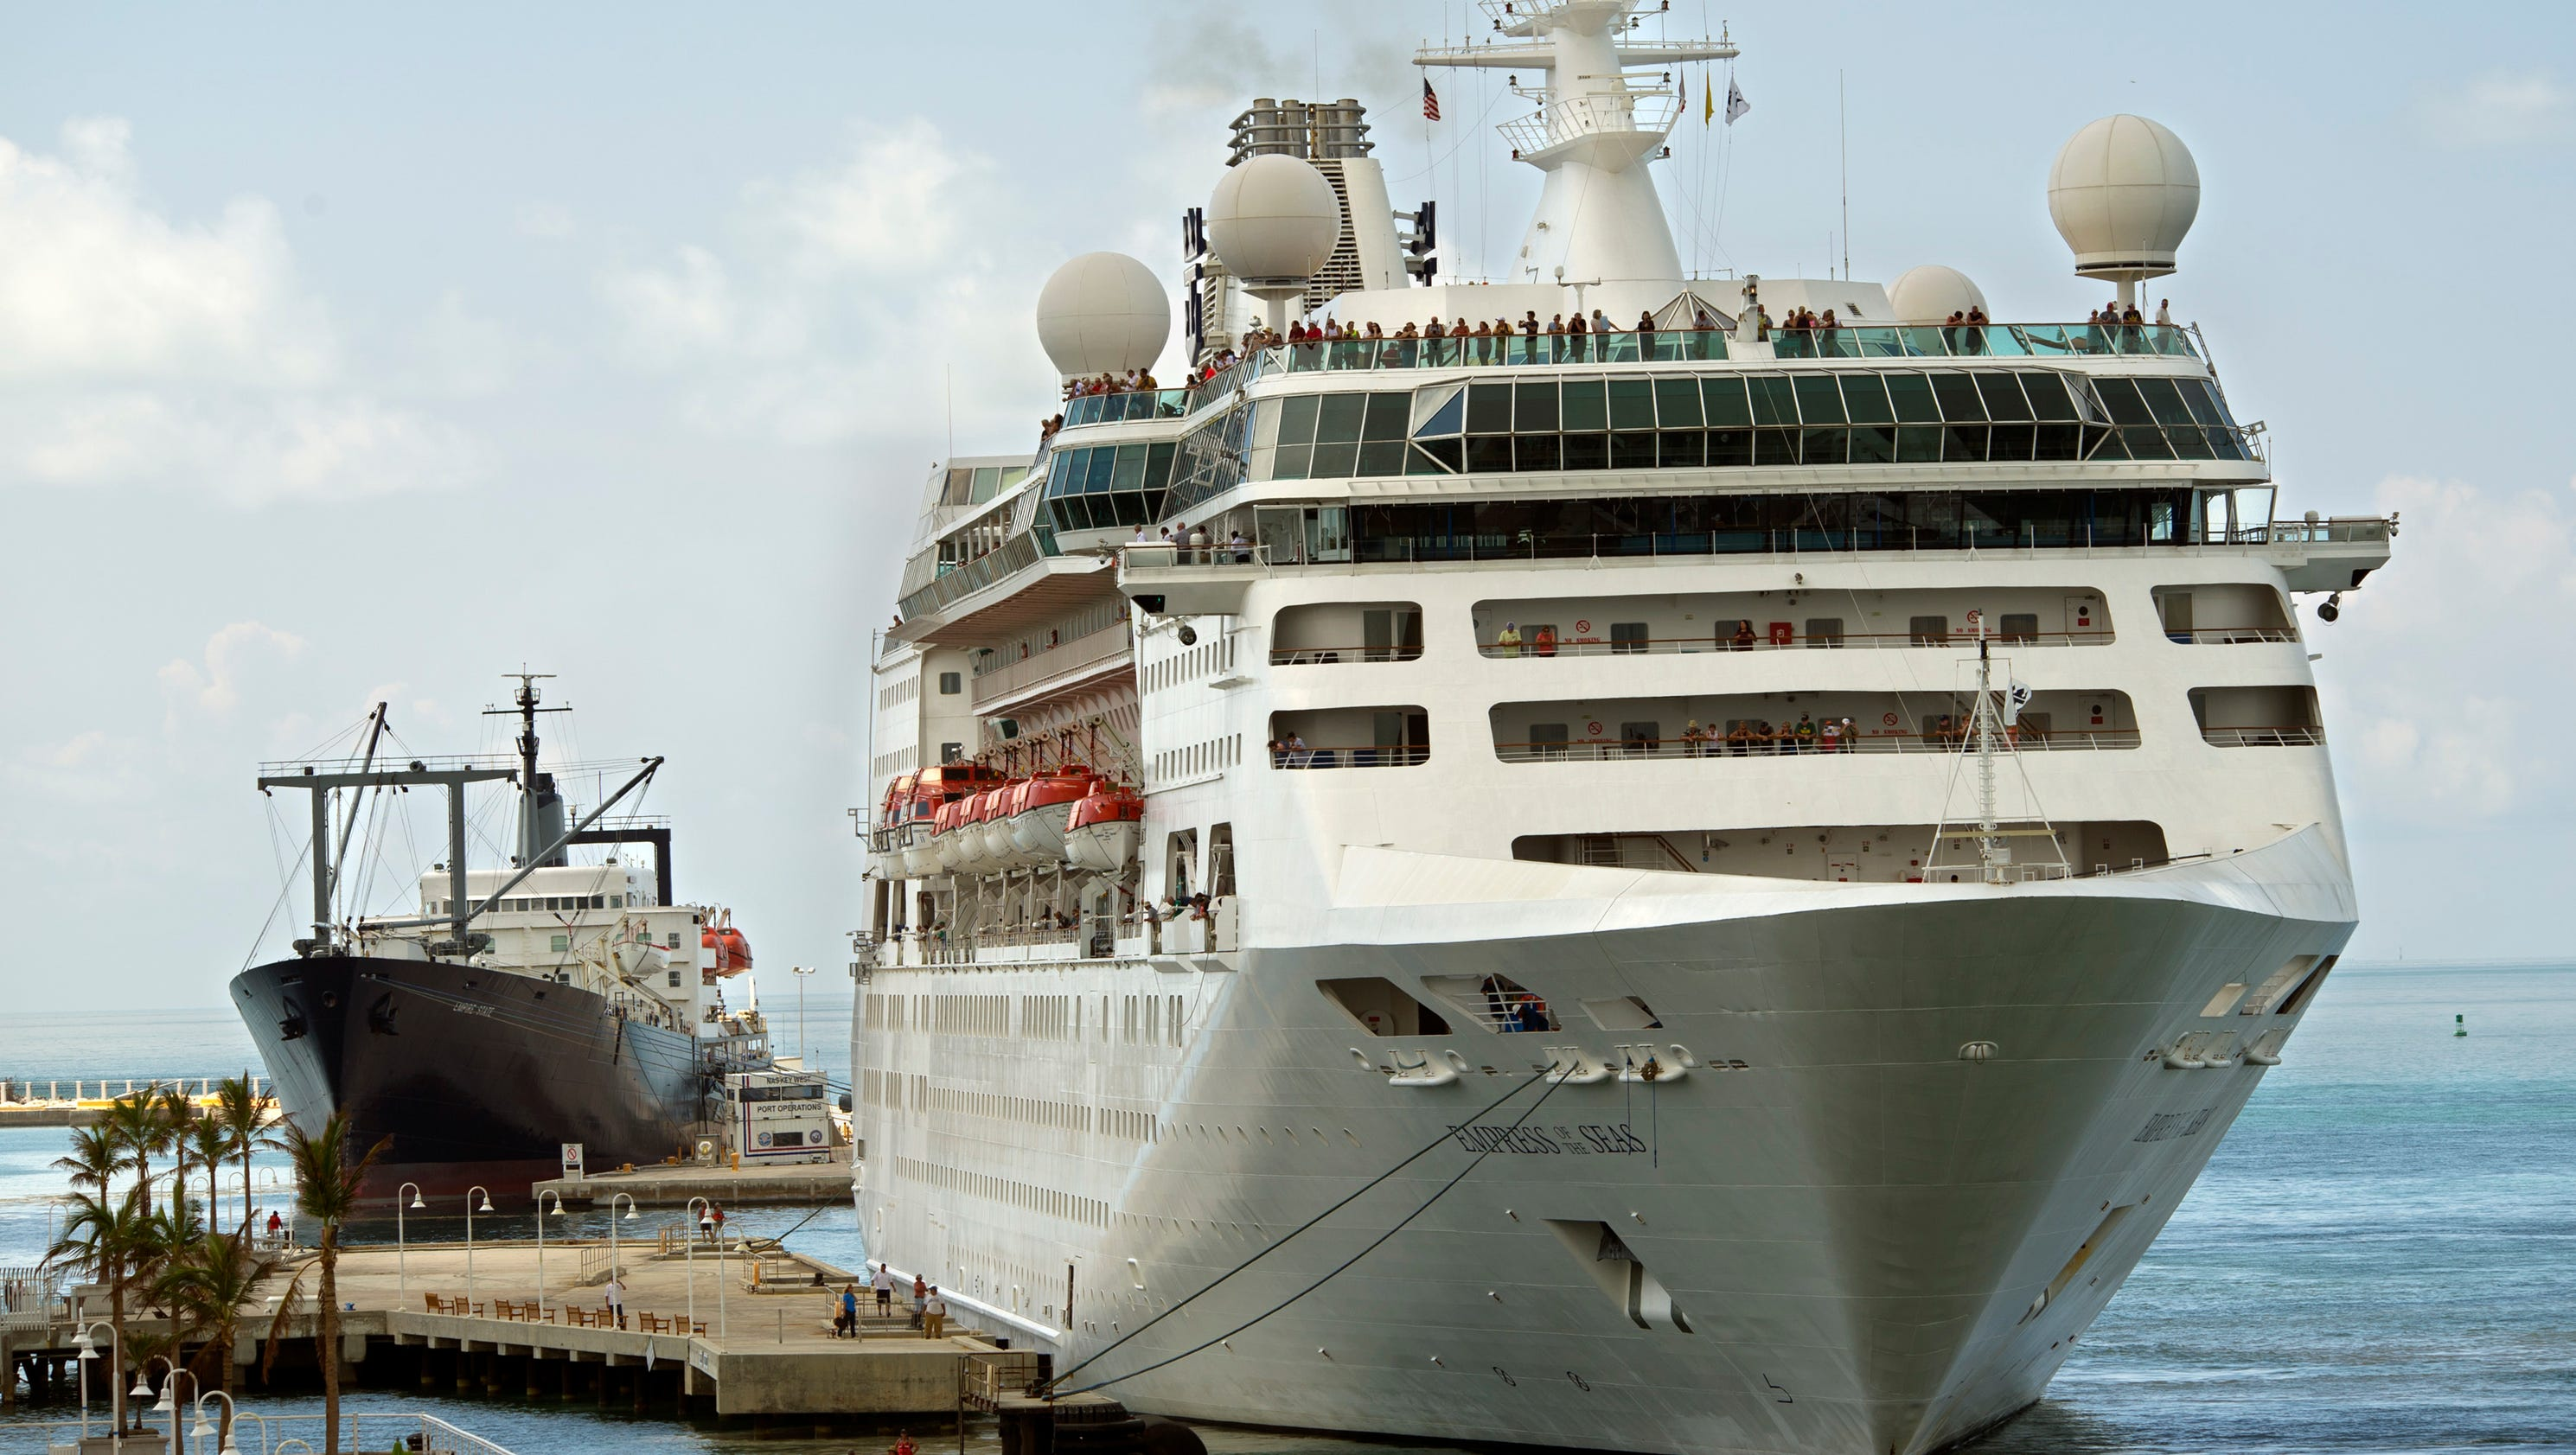 Hurricane Irma First Cruise Ship Since The Storm Docks In Key West - Cruise ships key west